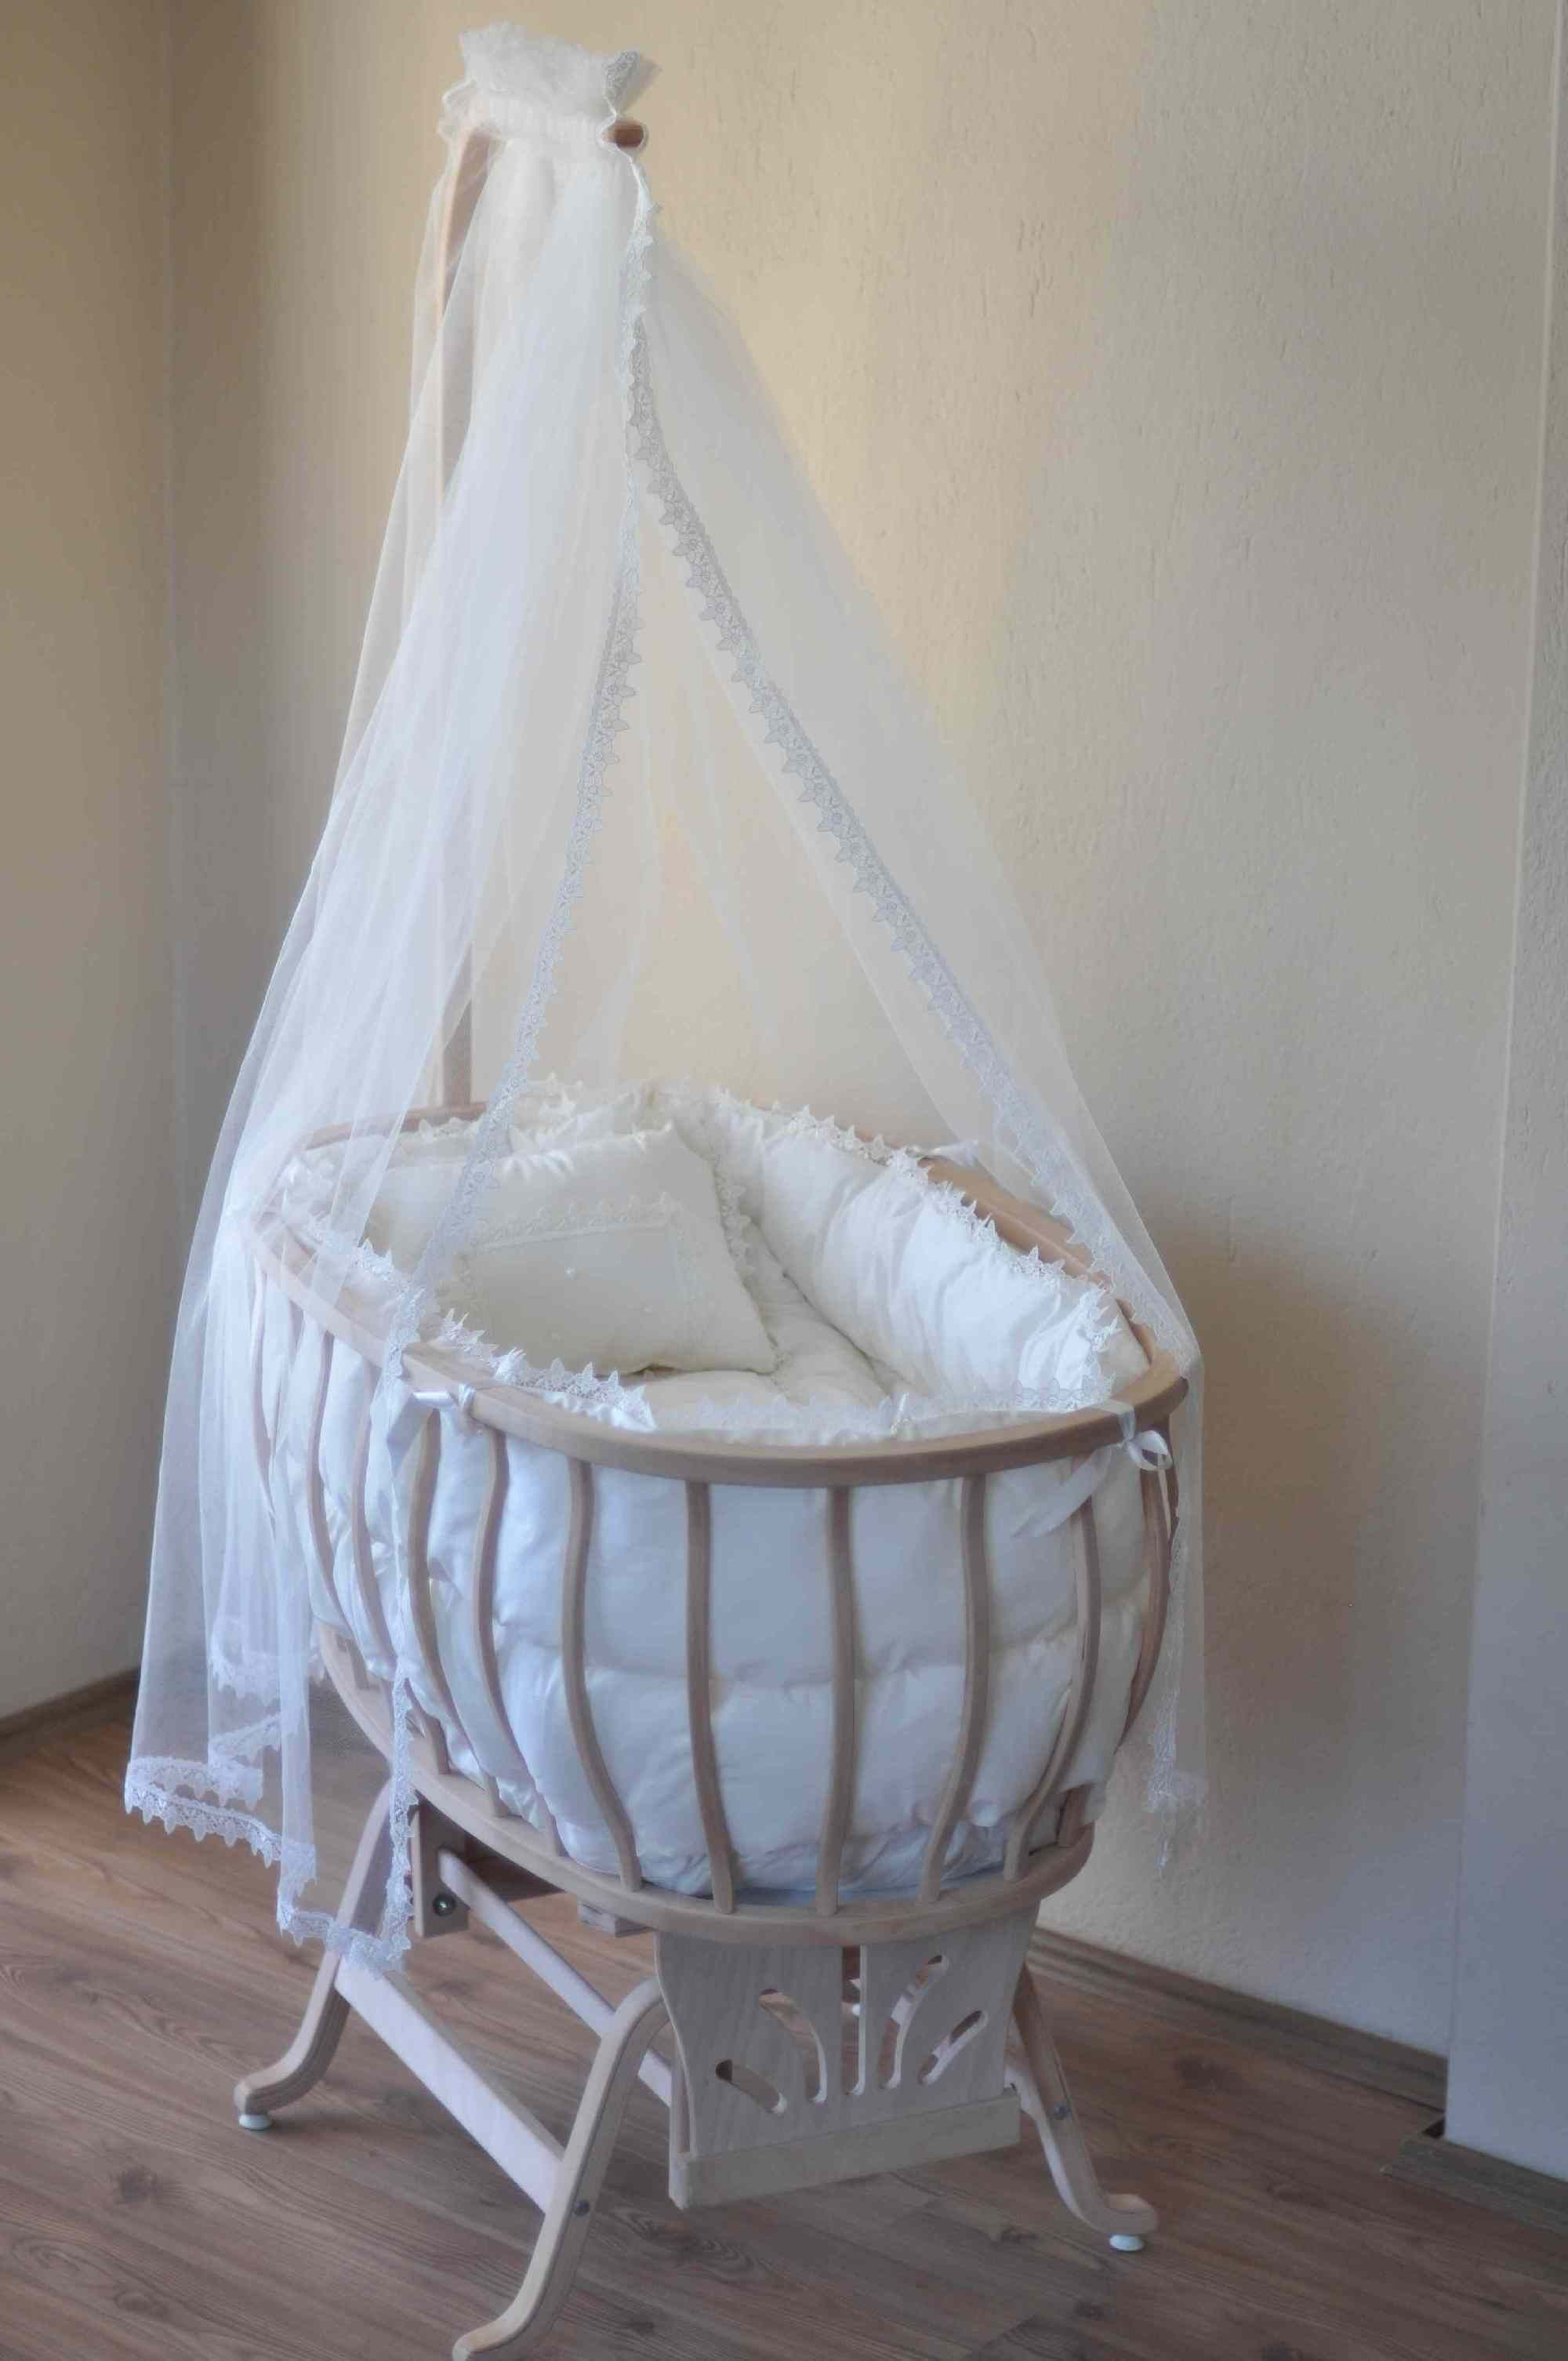 Baby Schaukelwiege Pin By Luiza Il On F9 Baby Vintage Crib Bassinet